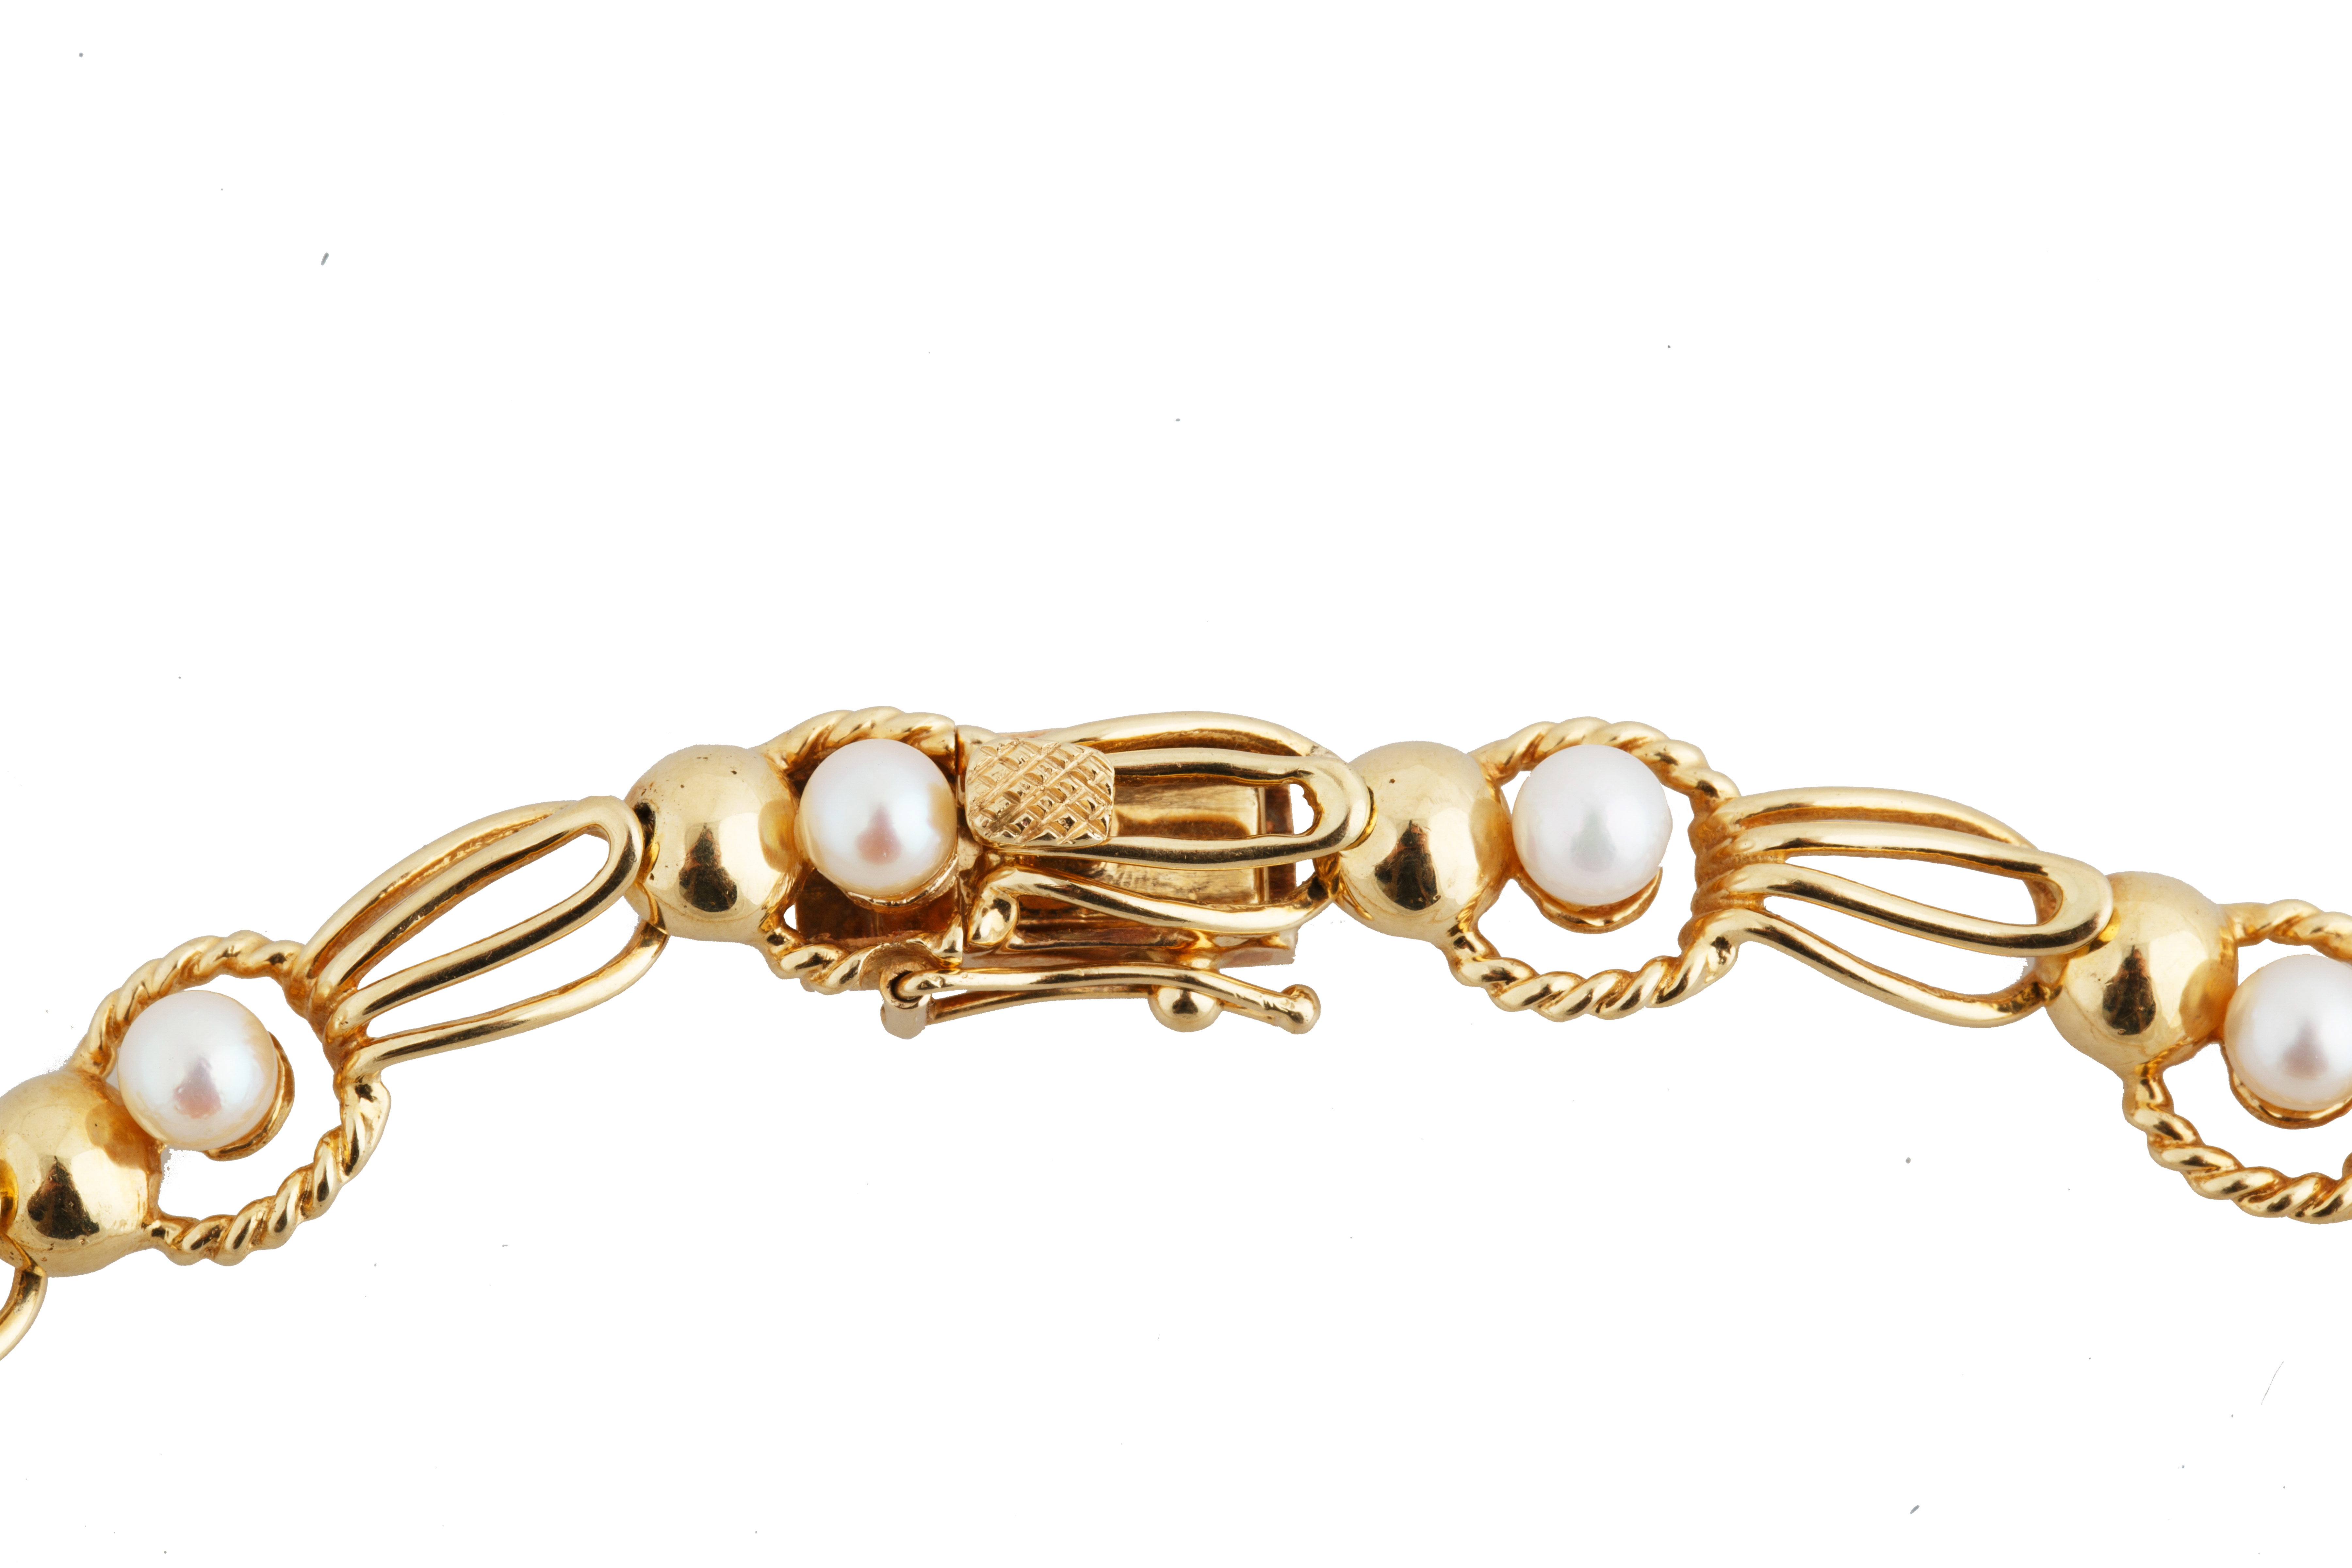 PEARL AND 18KT GOLD BRACELET AND NECKLACE SET - Image 3 of 8